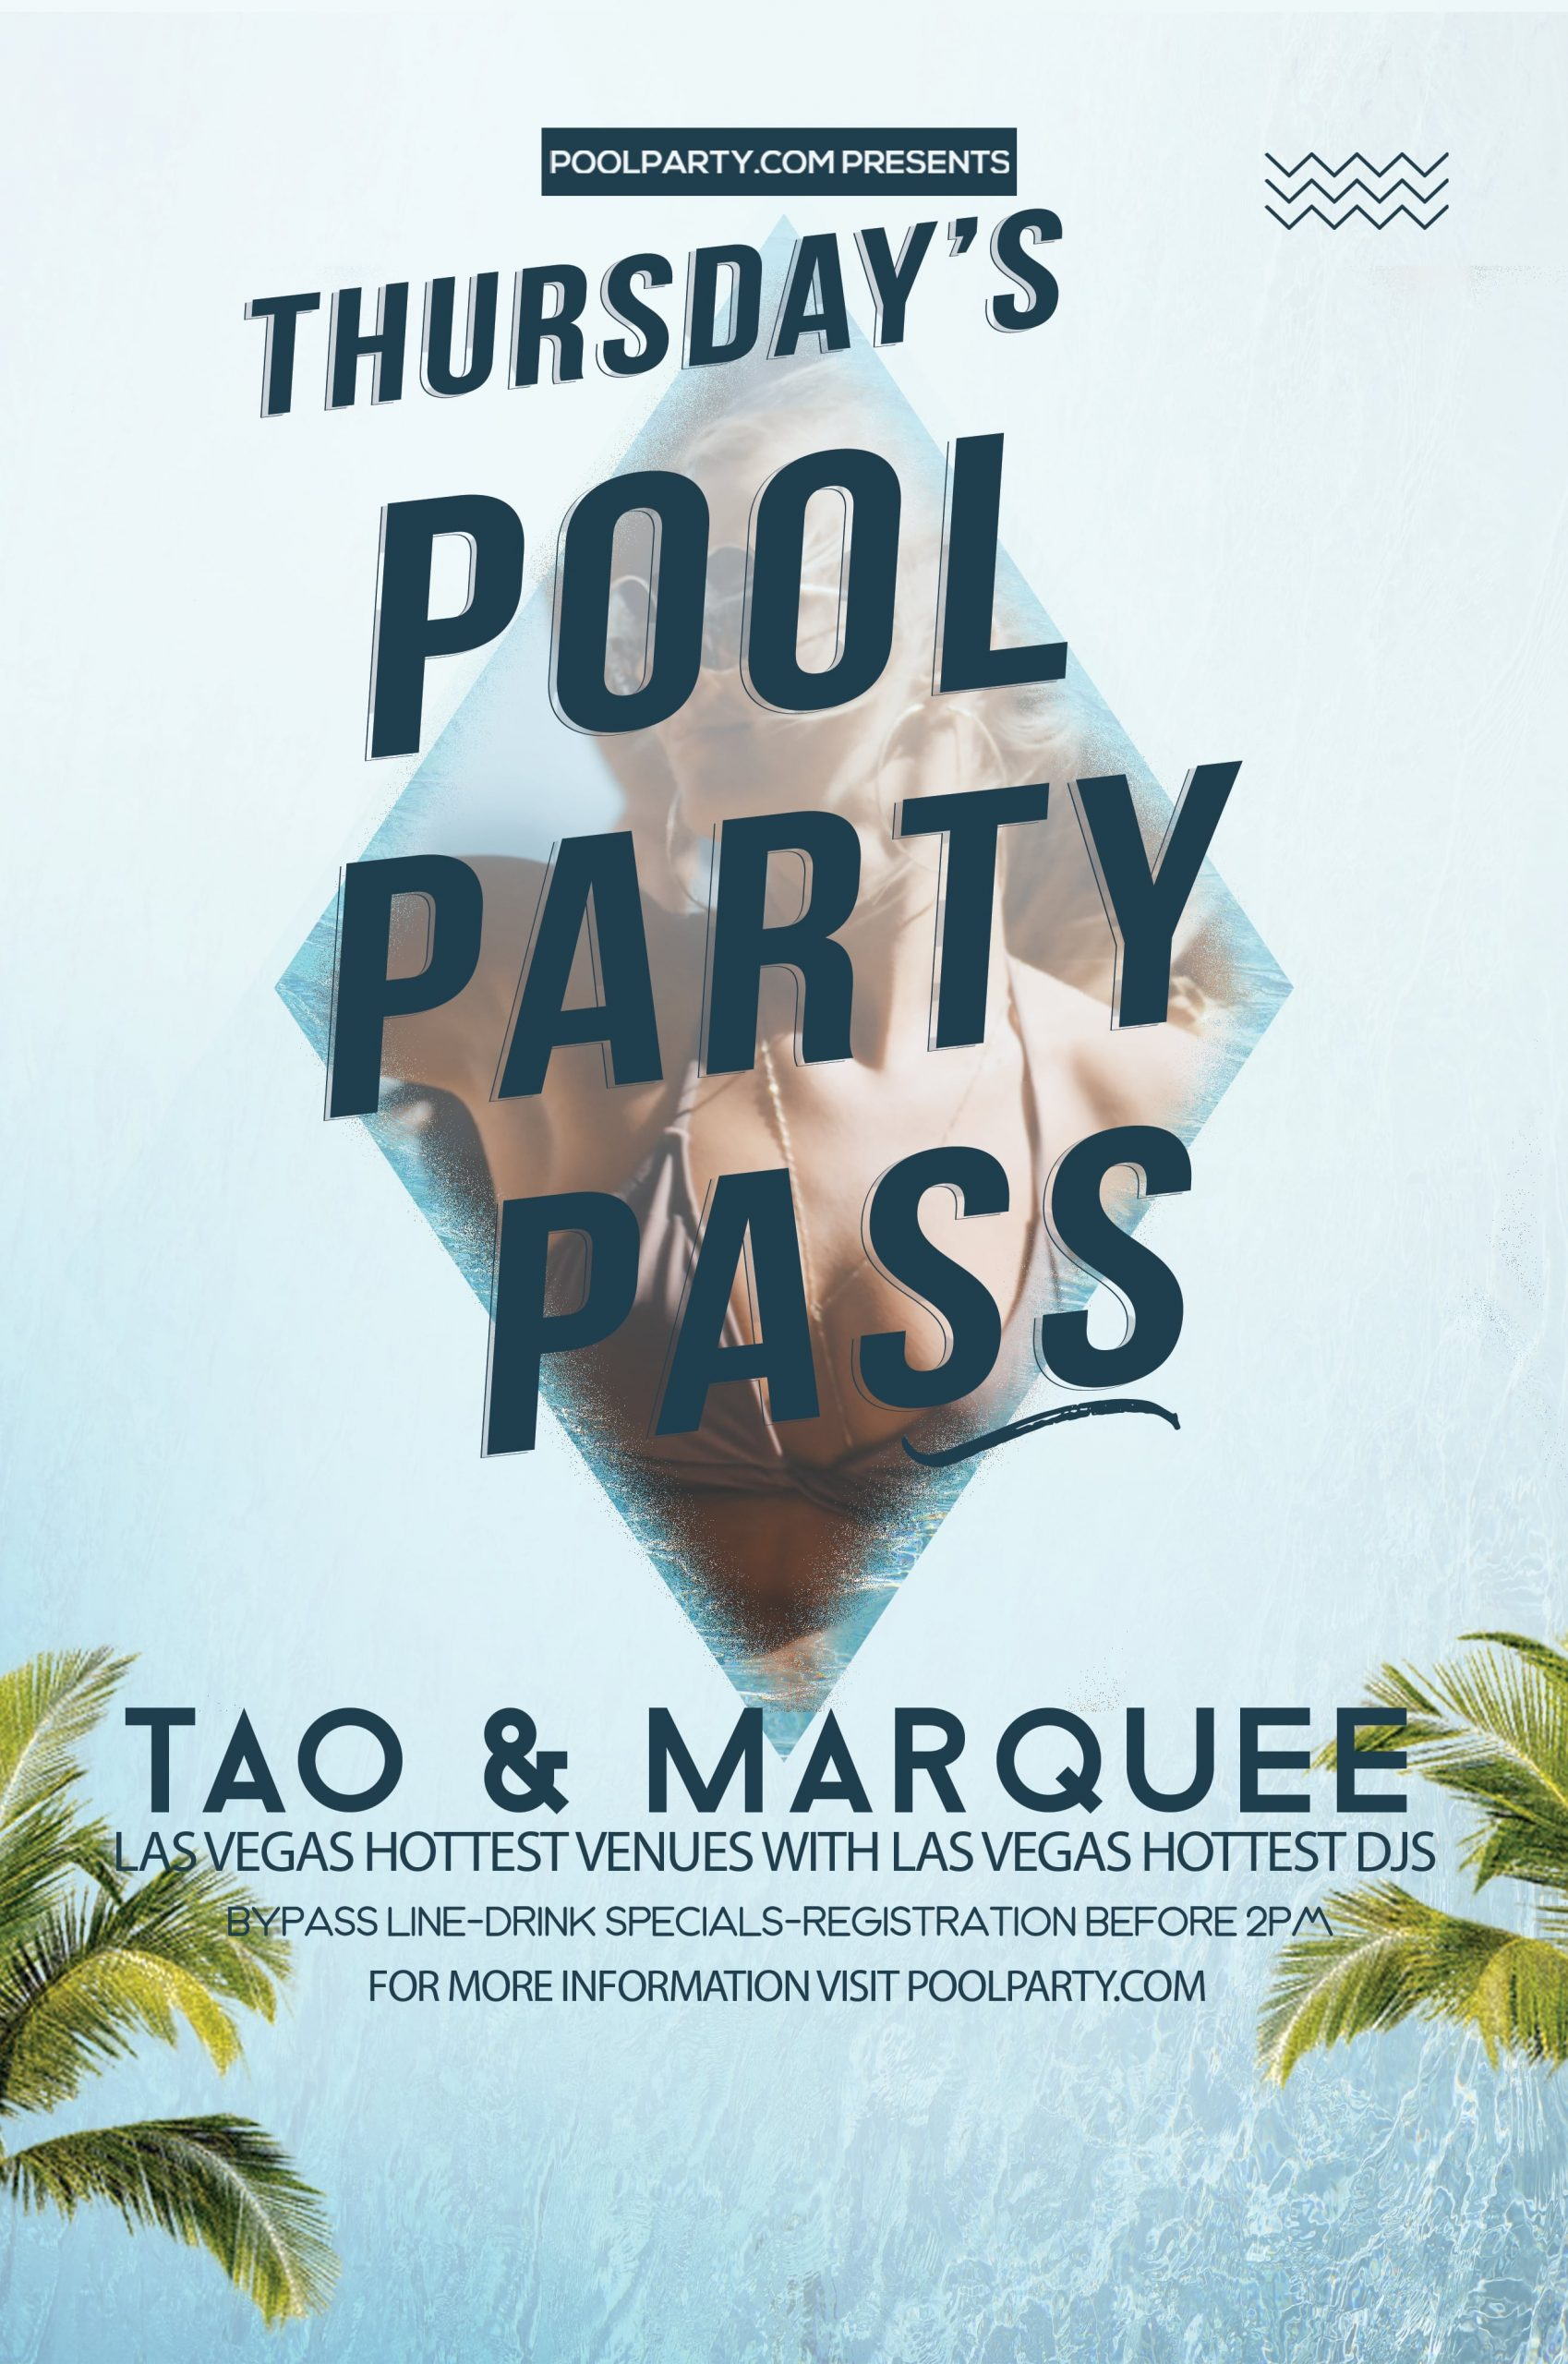 Thursday's Pool Party Pass (July 18th)*NOW INCLUDING FREE ADMISSION TO TAO NIGHTCLUB*